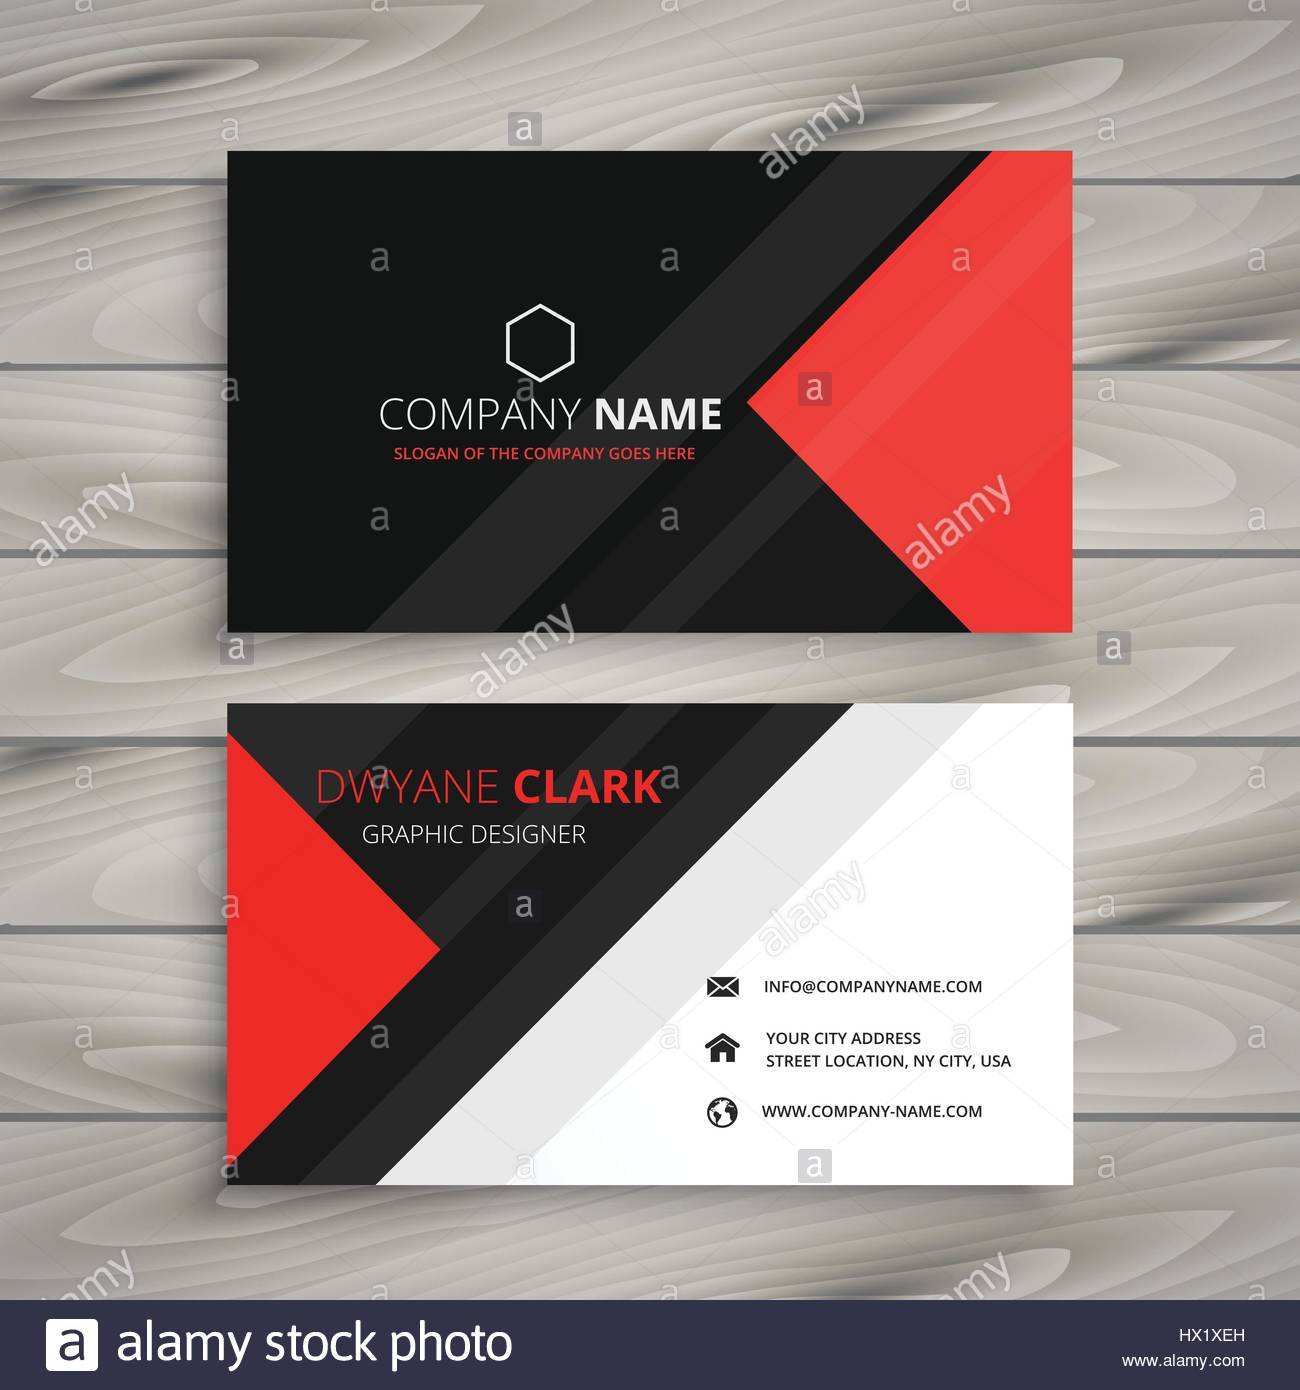 Red Black Corporate Business Card Template Vector Design